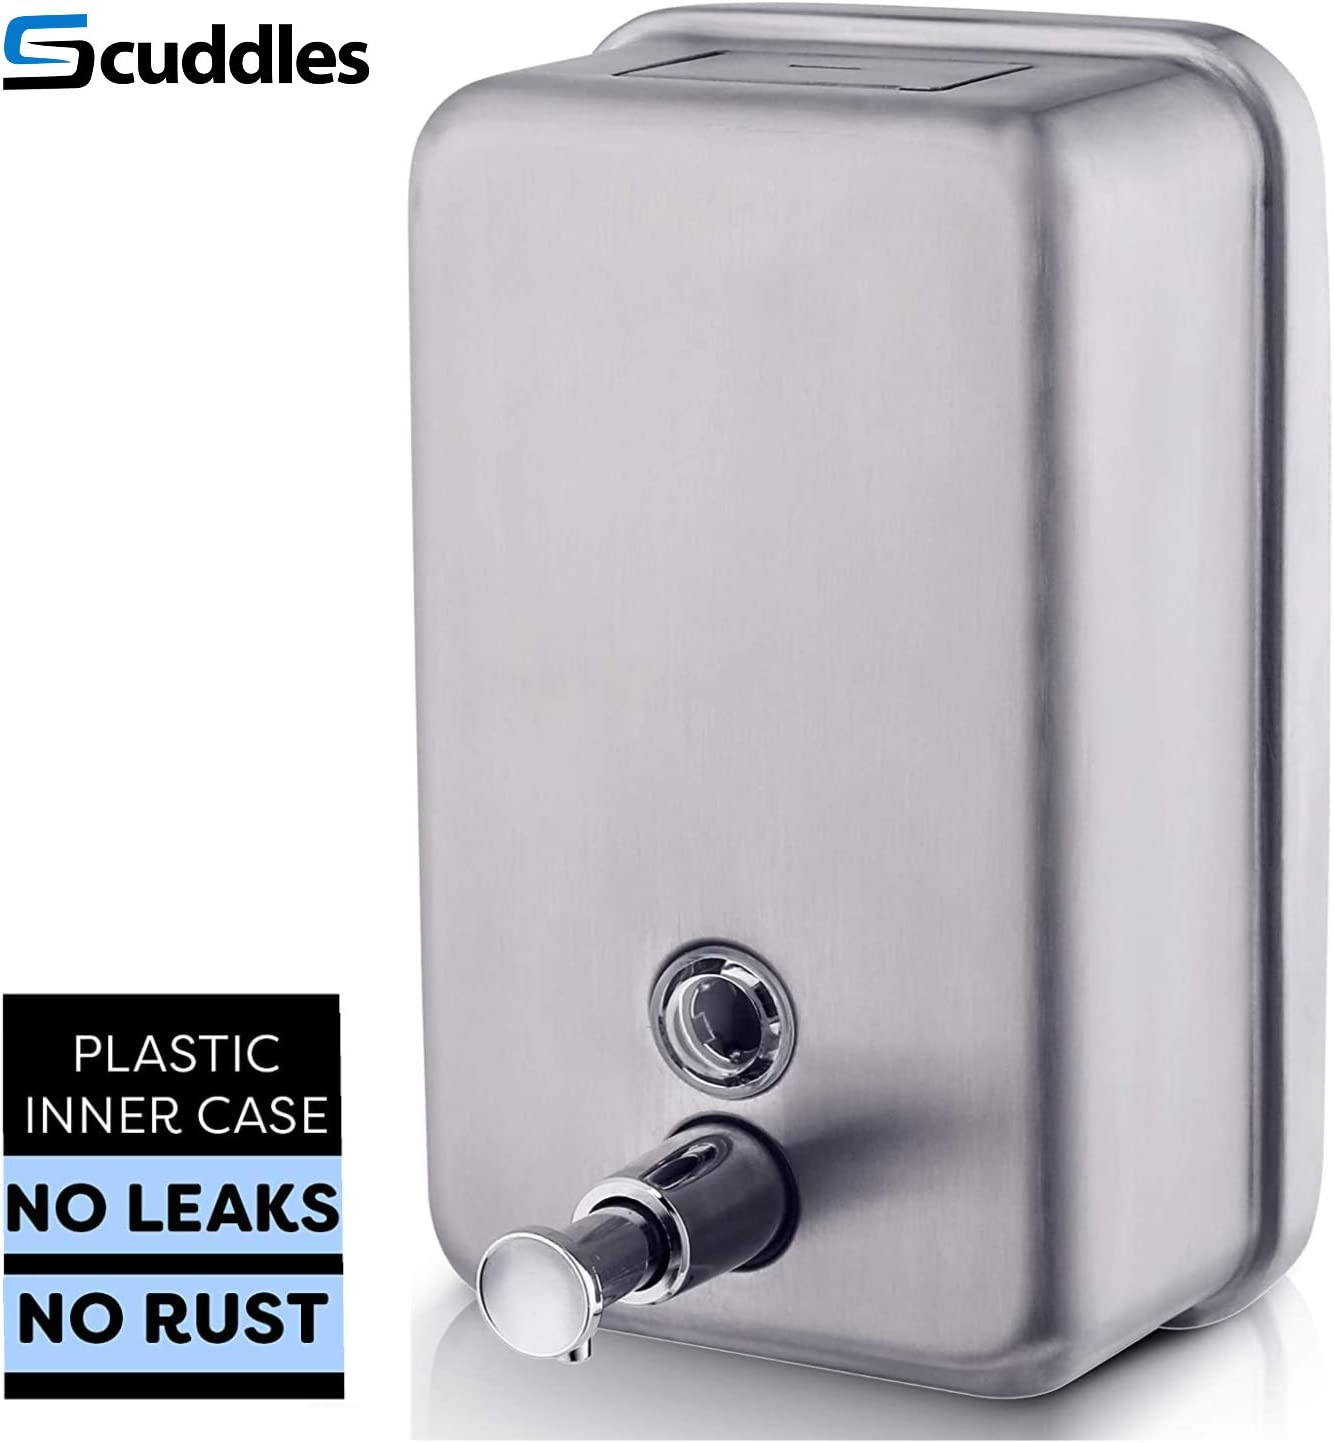 Scuddles Manual Soap Dispenser Kitchen Bathroom Wall Mounted Soap Dispenser Stainless Steel Commercial Soap Dispenser for Liquid Containers Shampoo Gel Chamber Plastic - (40.5 oz) 1200ml